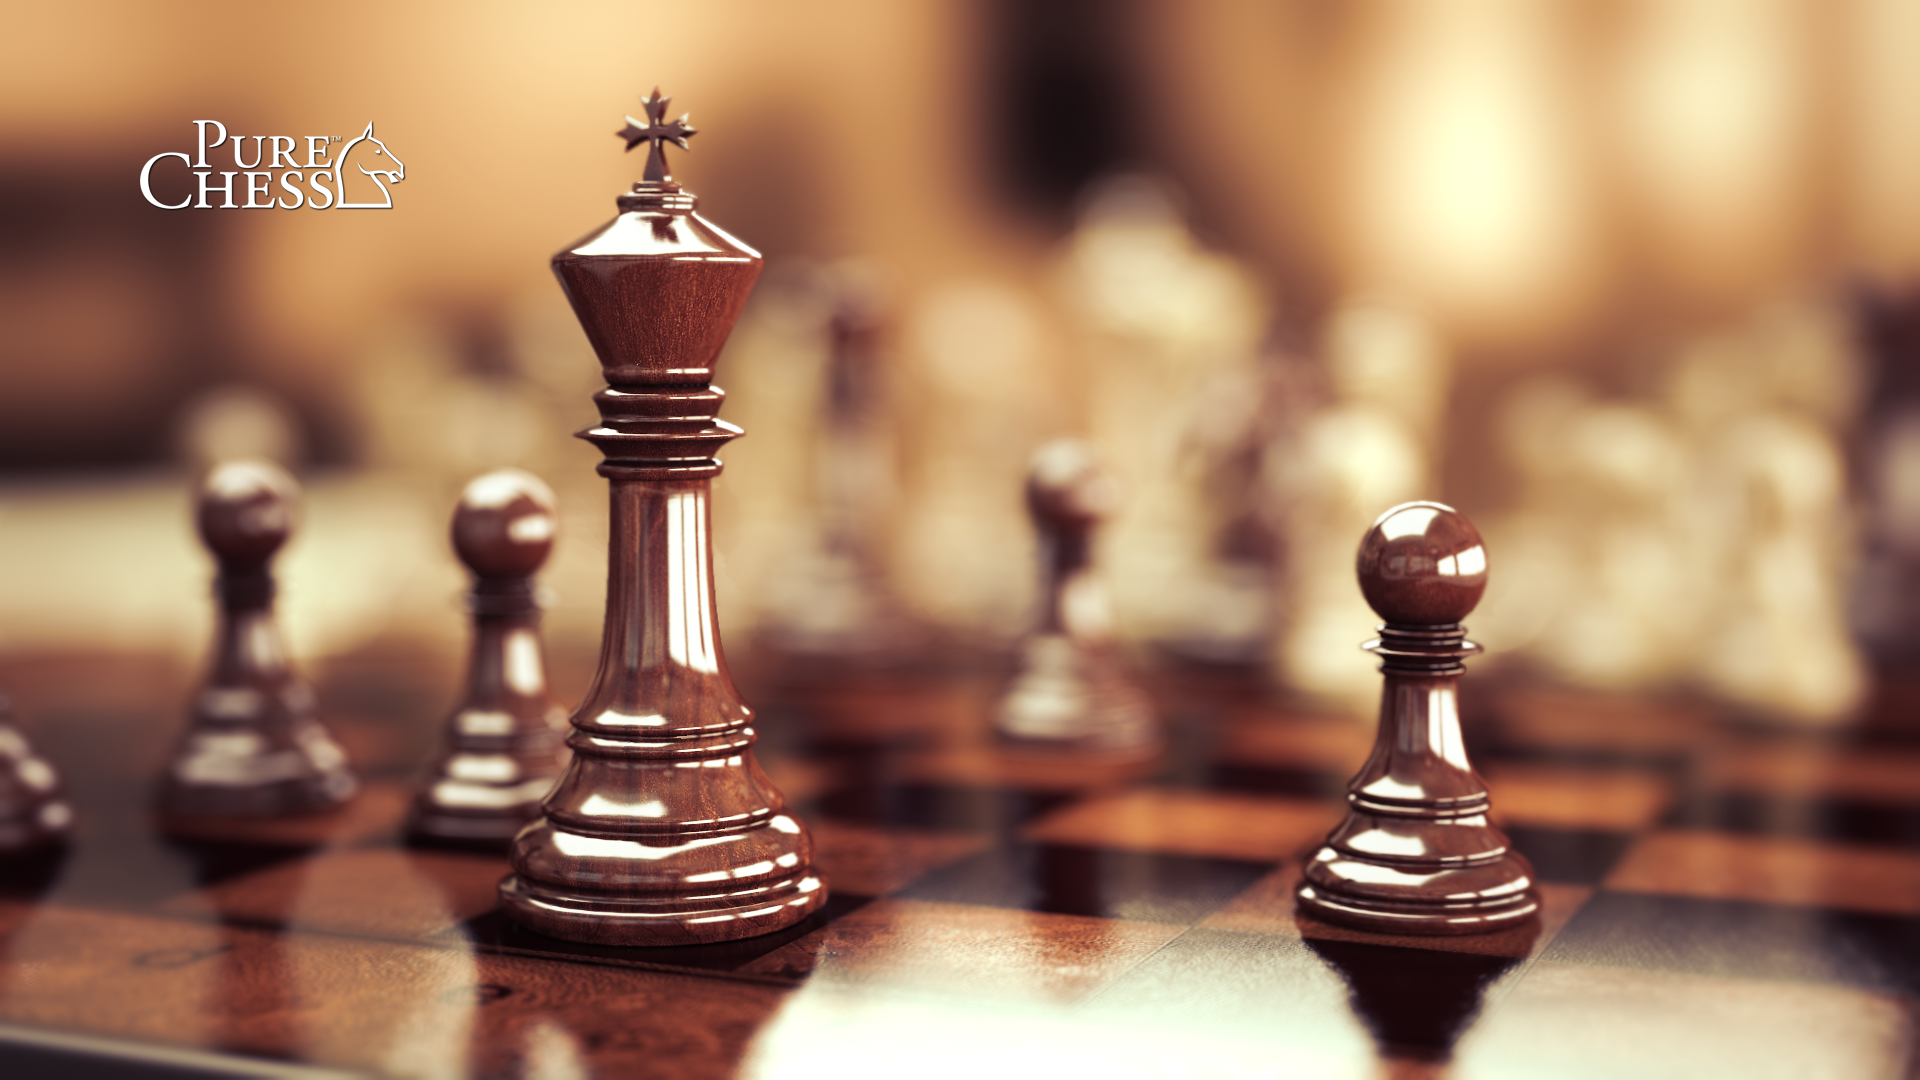 Chess Wallpaper – Find the Best Graphics to Accent Your Chess Playing